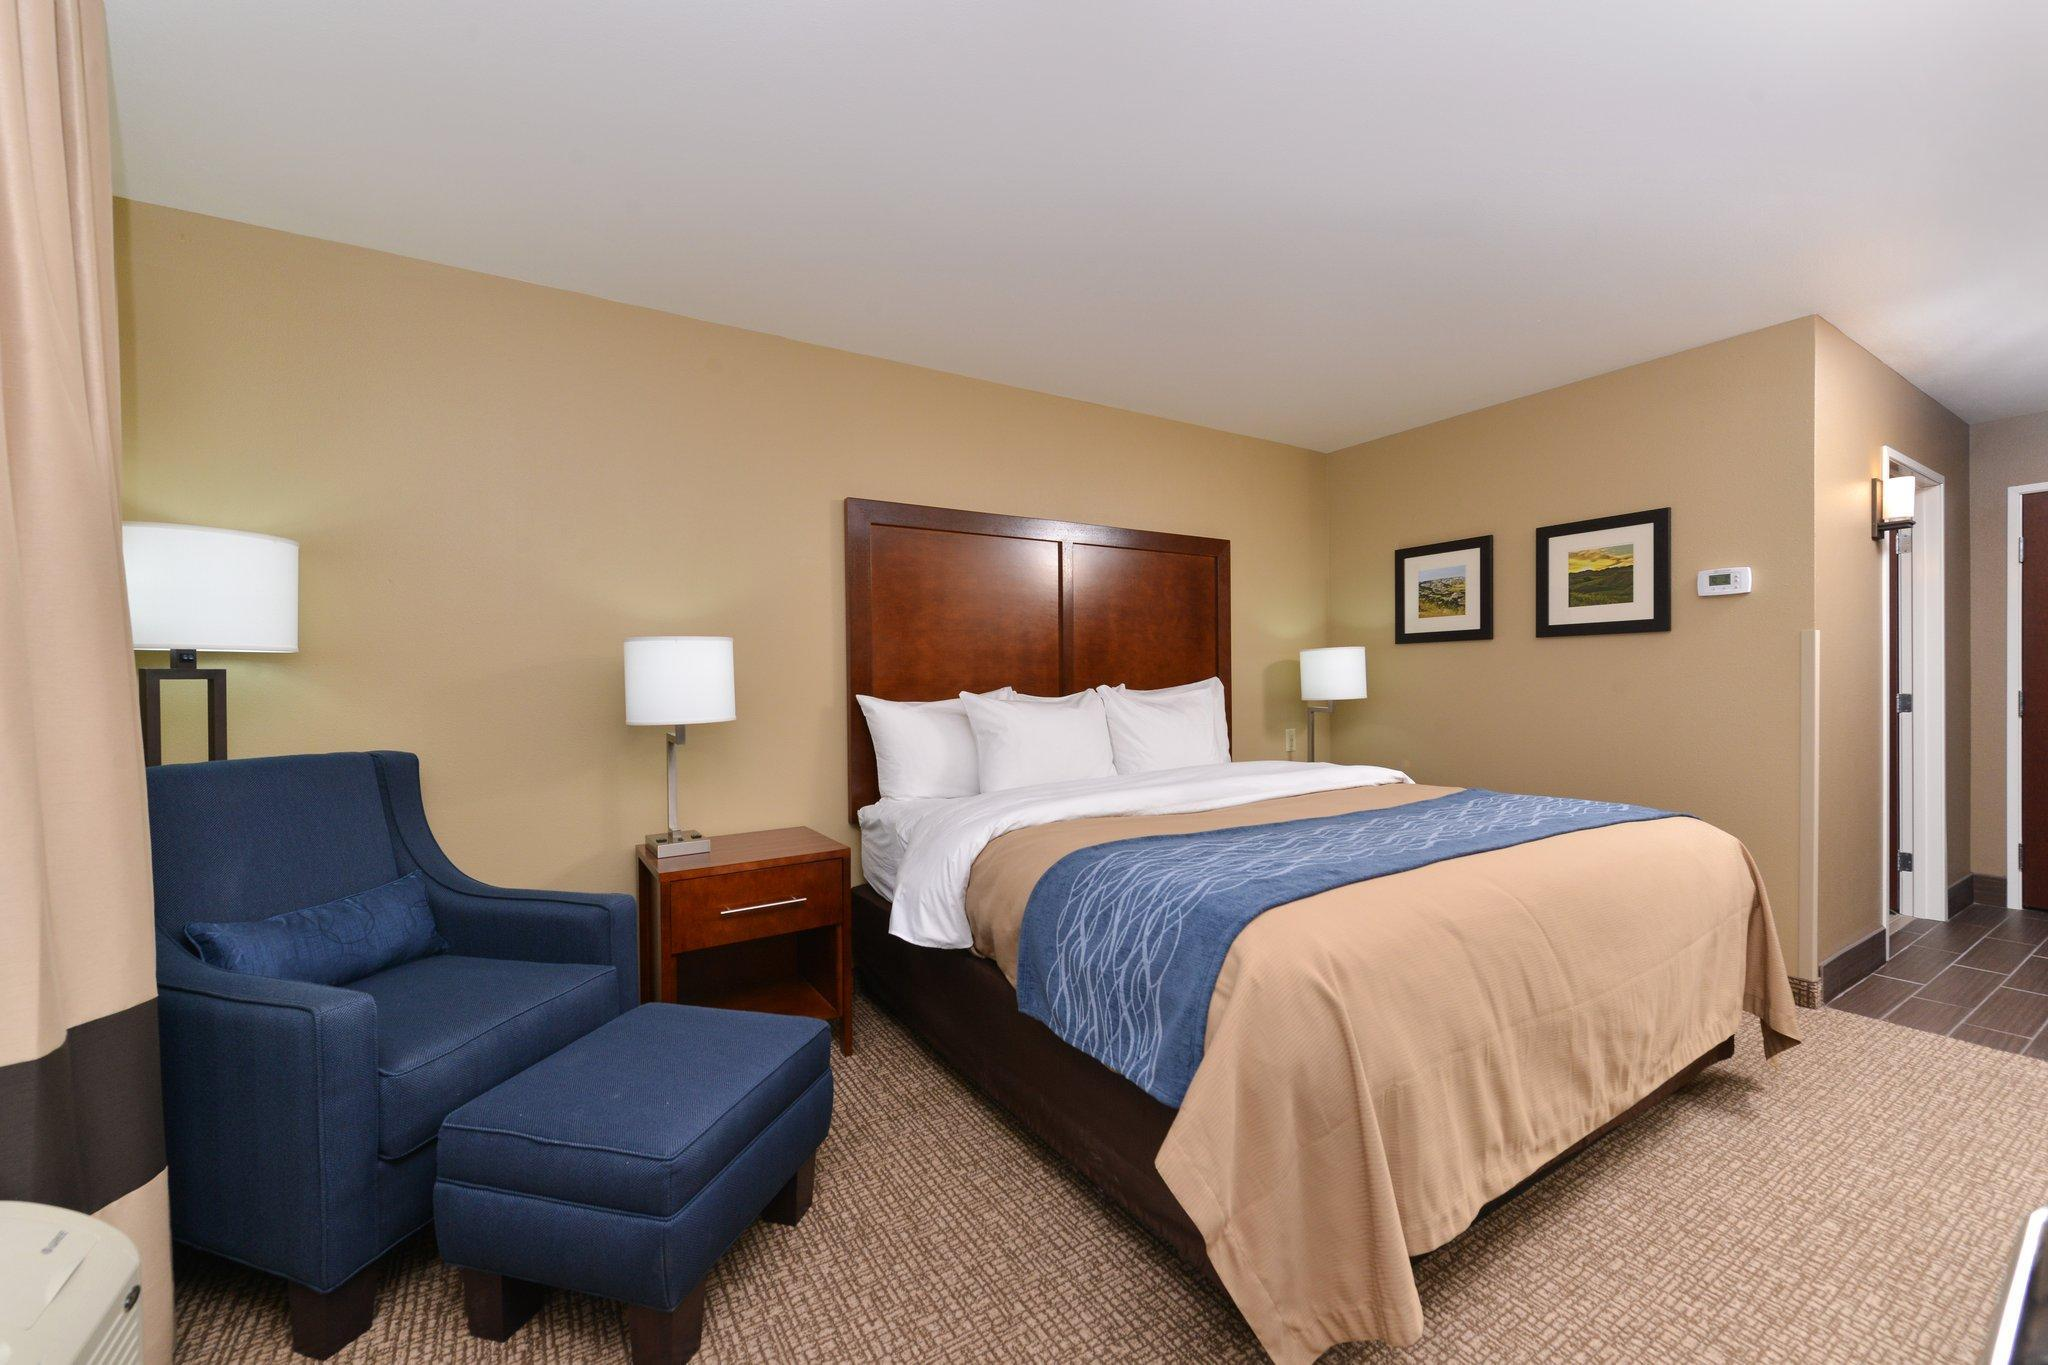 Comfort Inn and Suites Mandan - Bismarck Discount